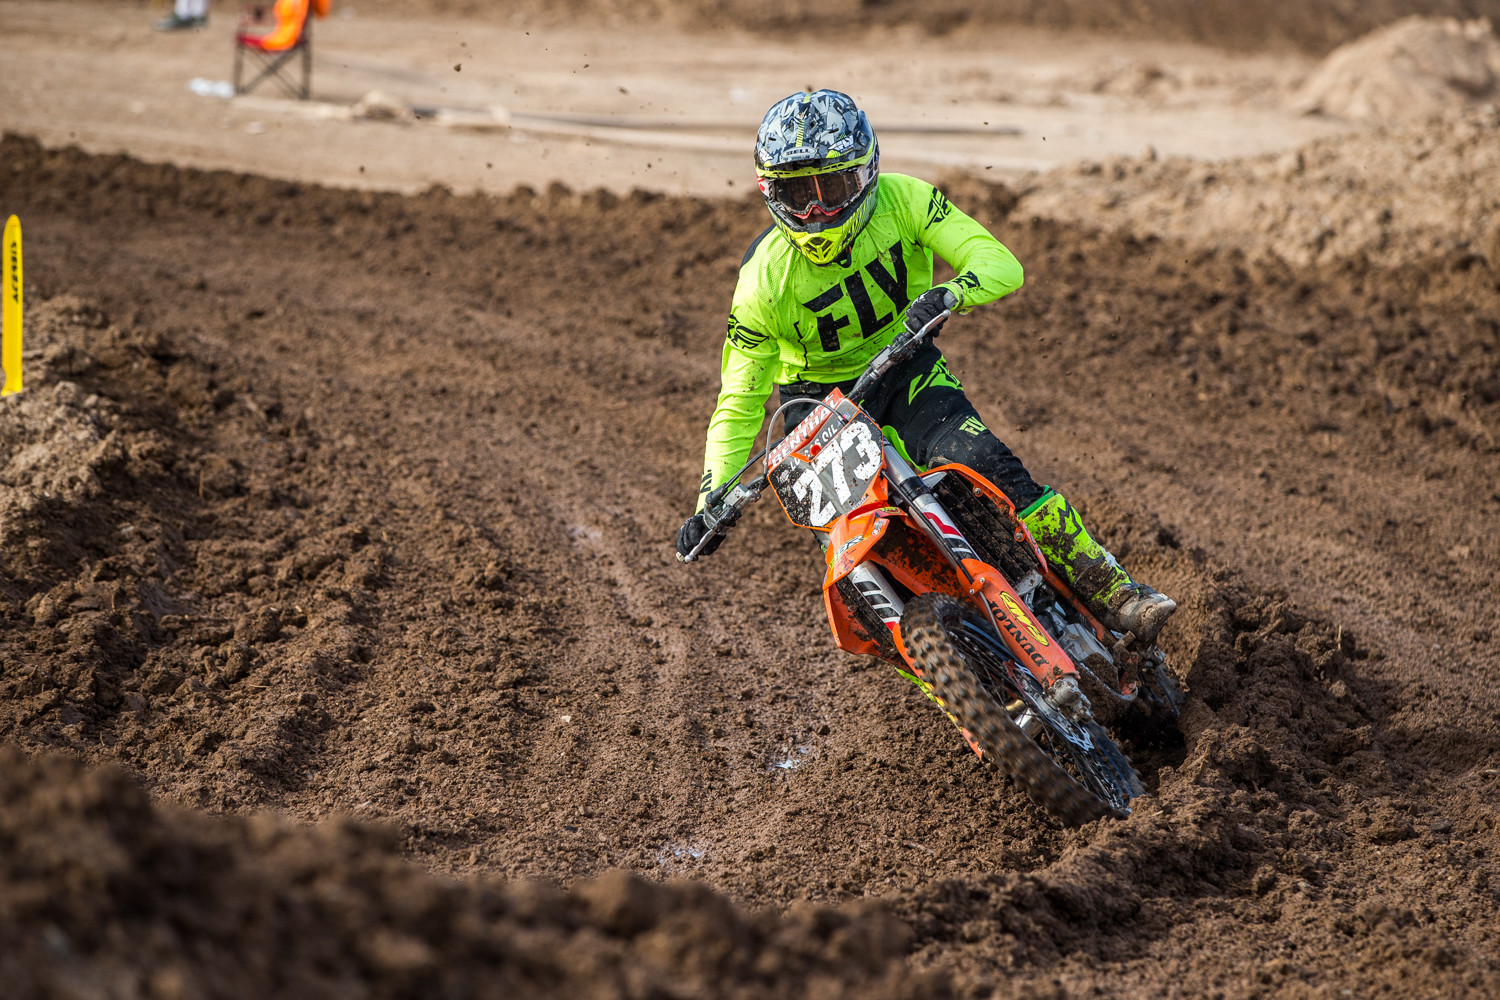 Ezra Lewis - Gallery: 2017 AMA Arizona Open Amateur National - Friday - Motocross Pictures - Vital MX